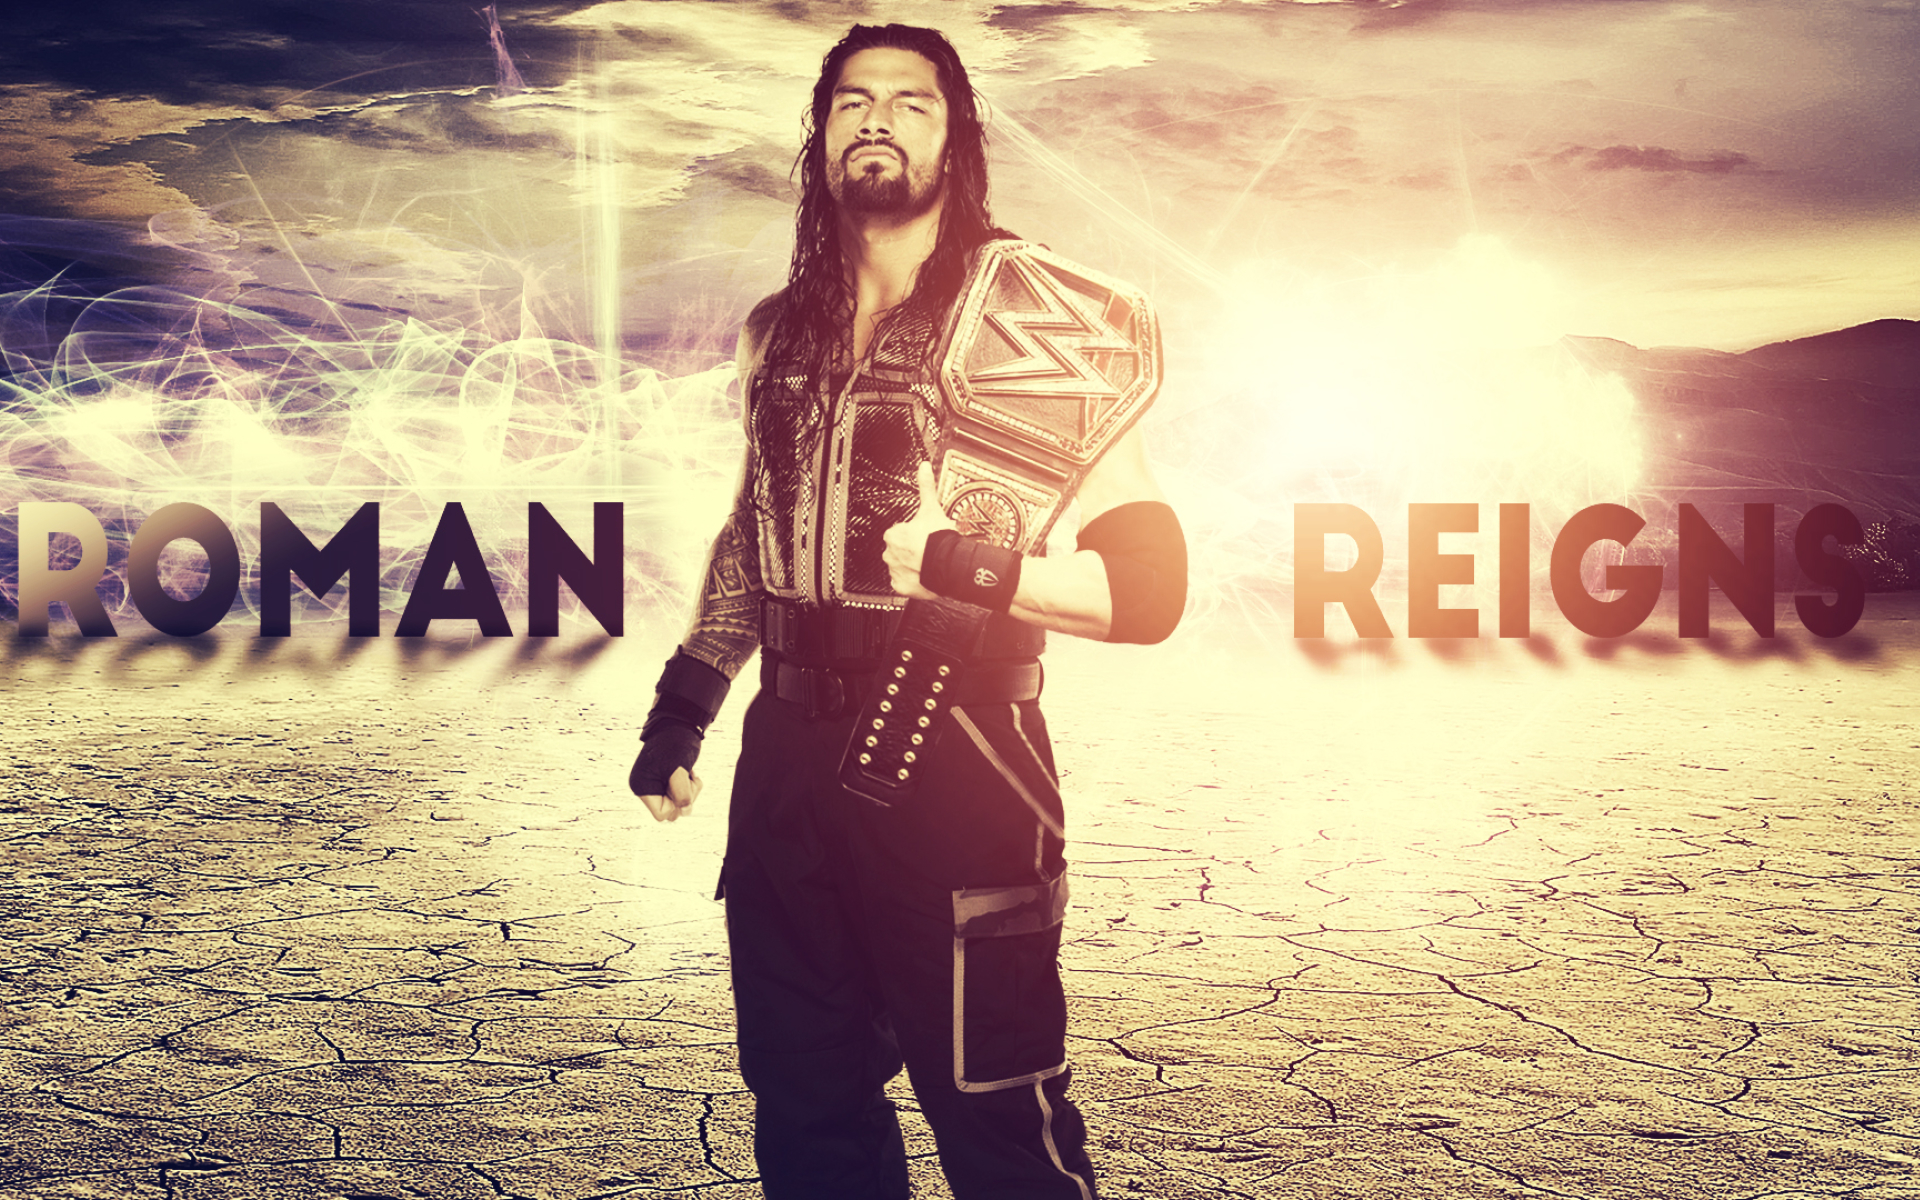 Roman Reigns Wwe Champion Full Hd Wallpaper